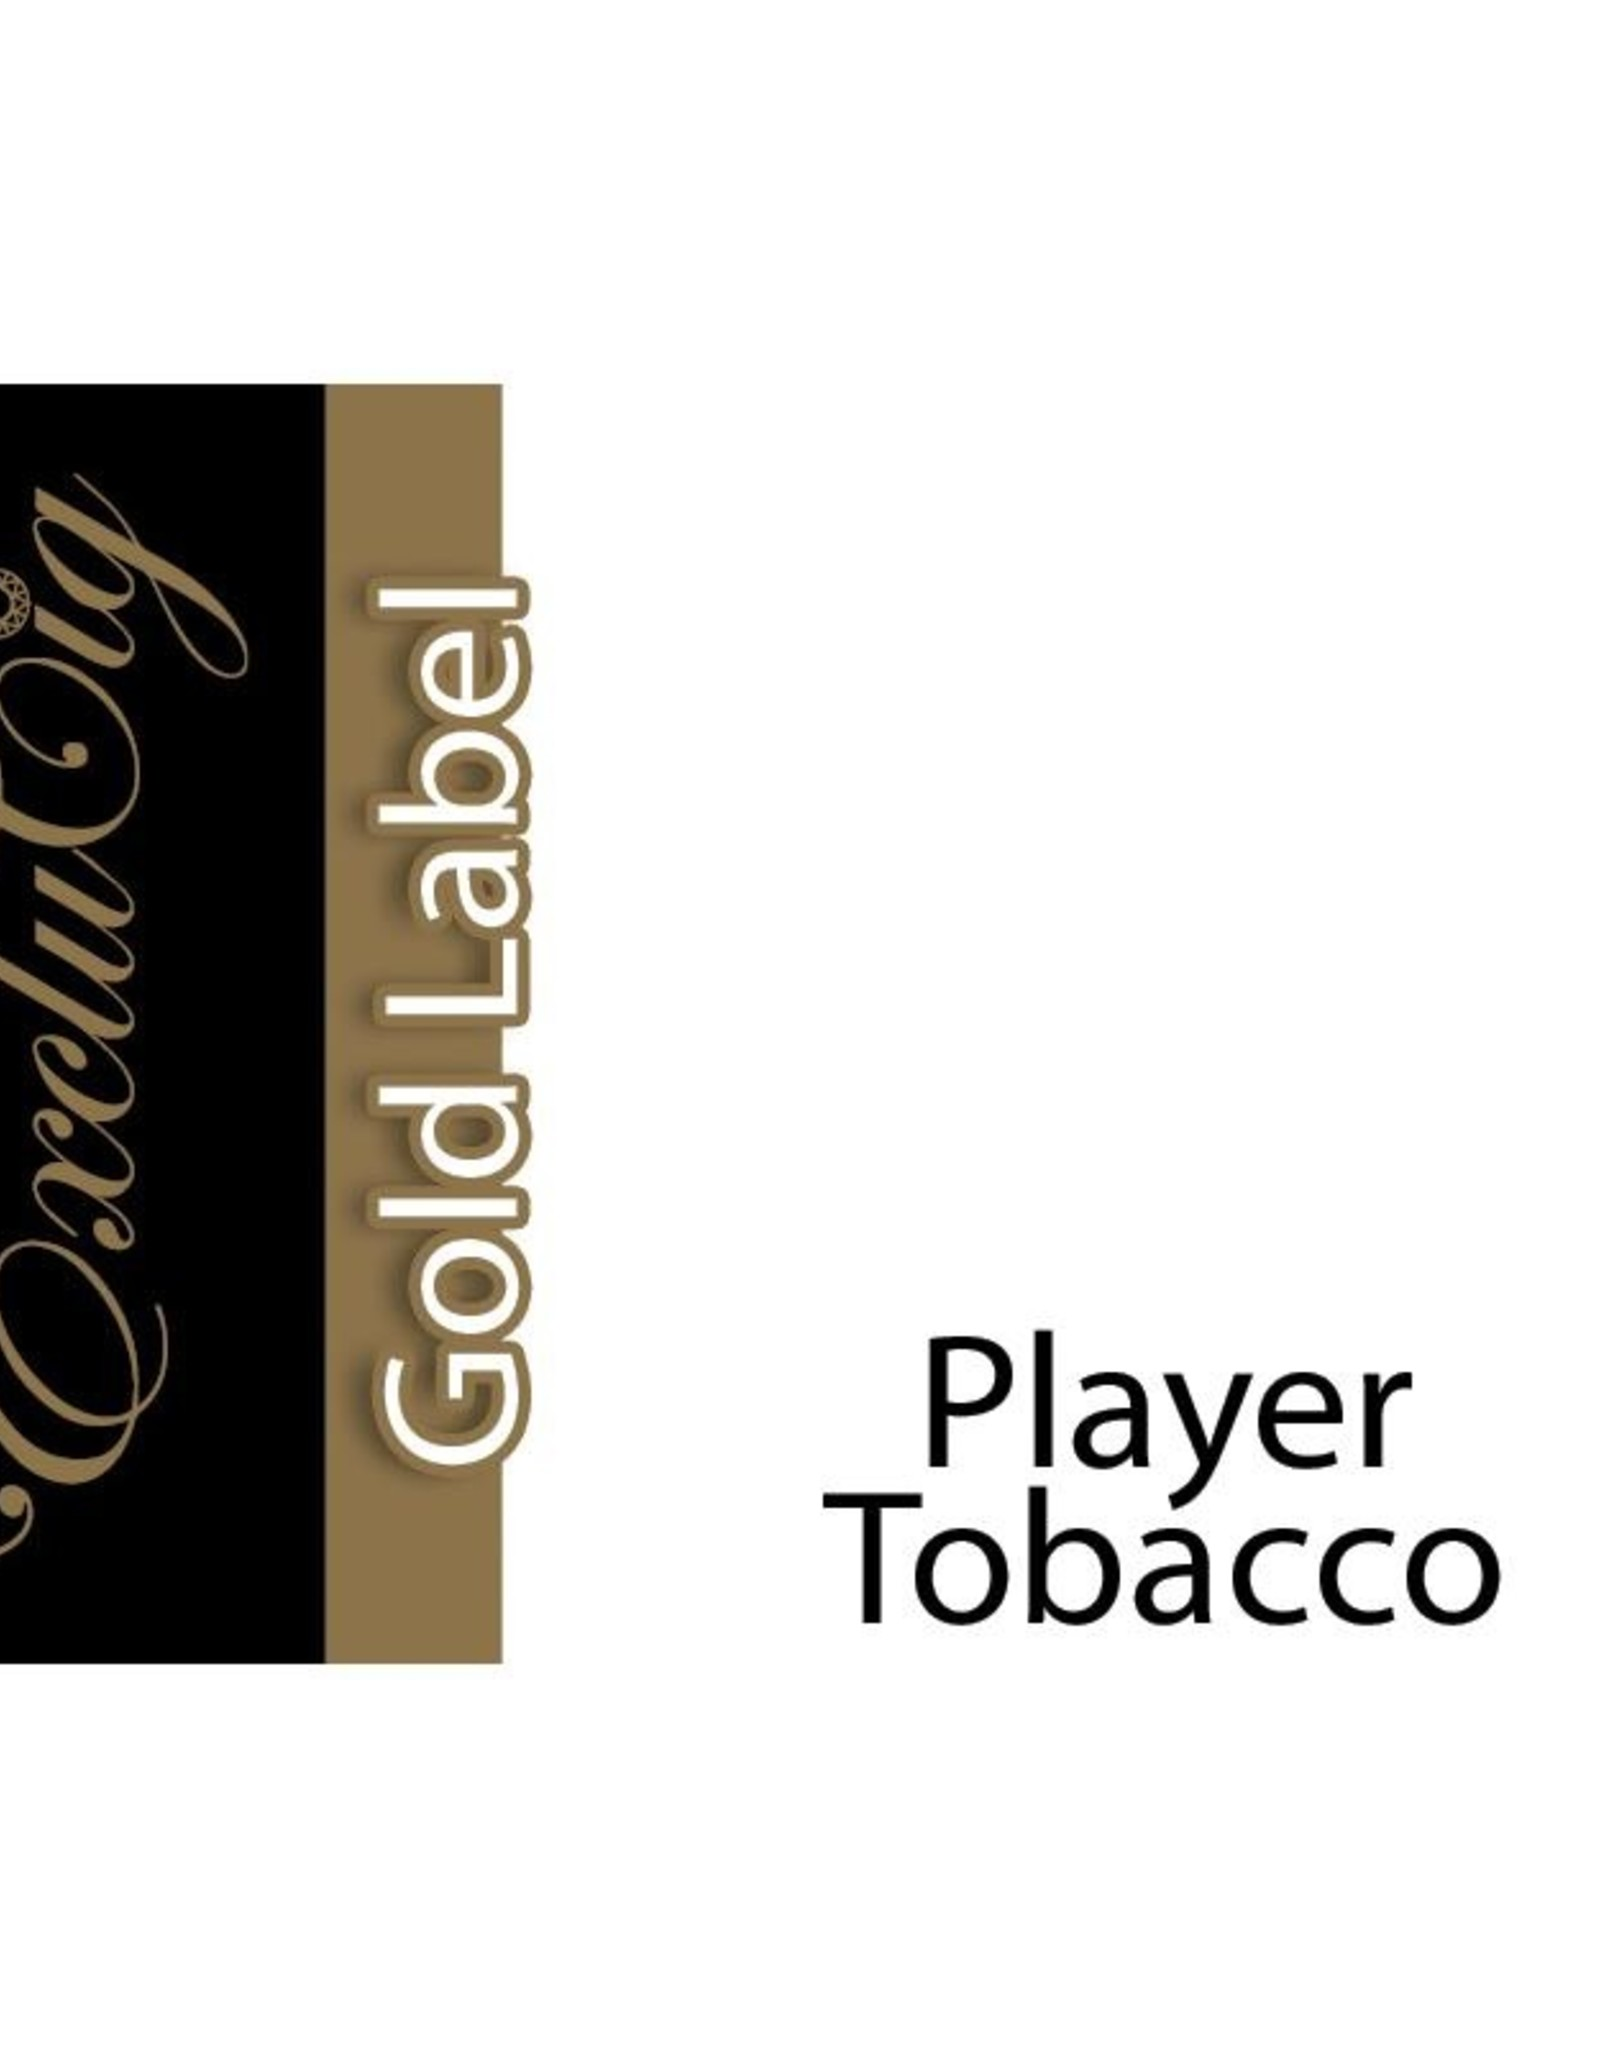 Exclucig Exclucig Gold Label E-liquid Player Tobacco 6 mg Nicotine